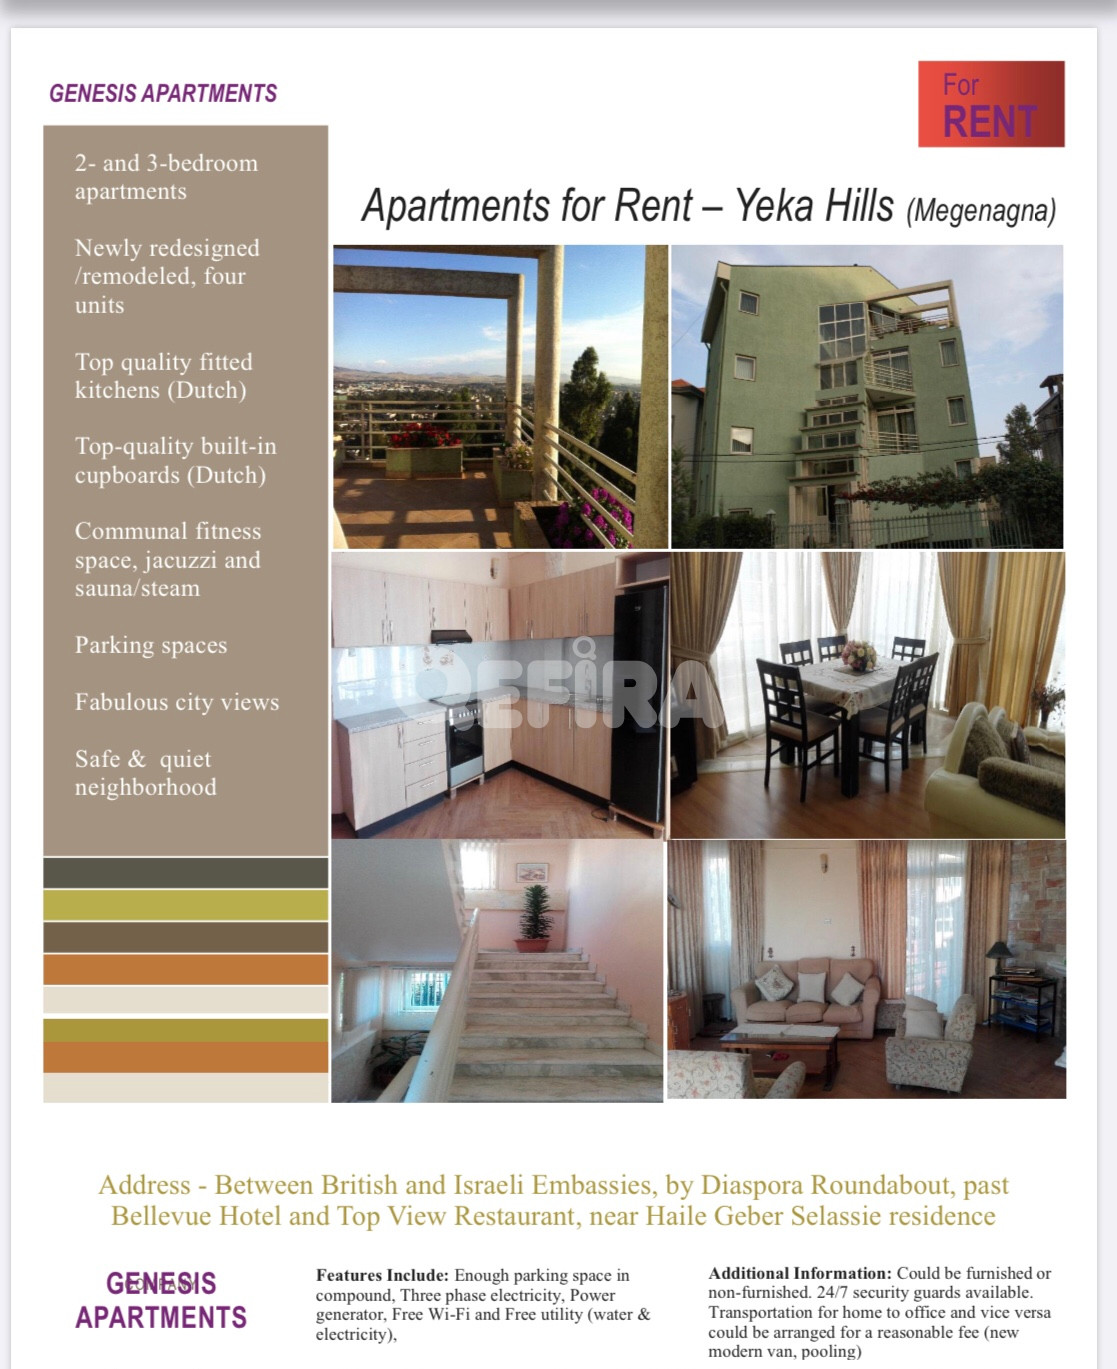 Apartments For Rent (Yeka Hills Megenagna) In Addis Ababa